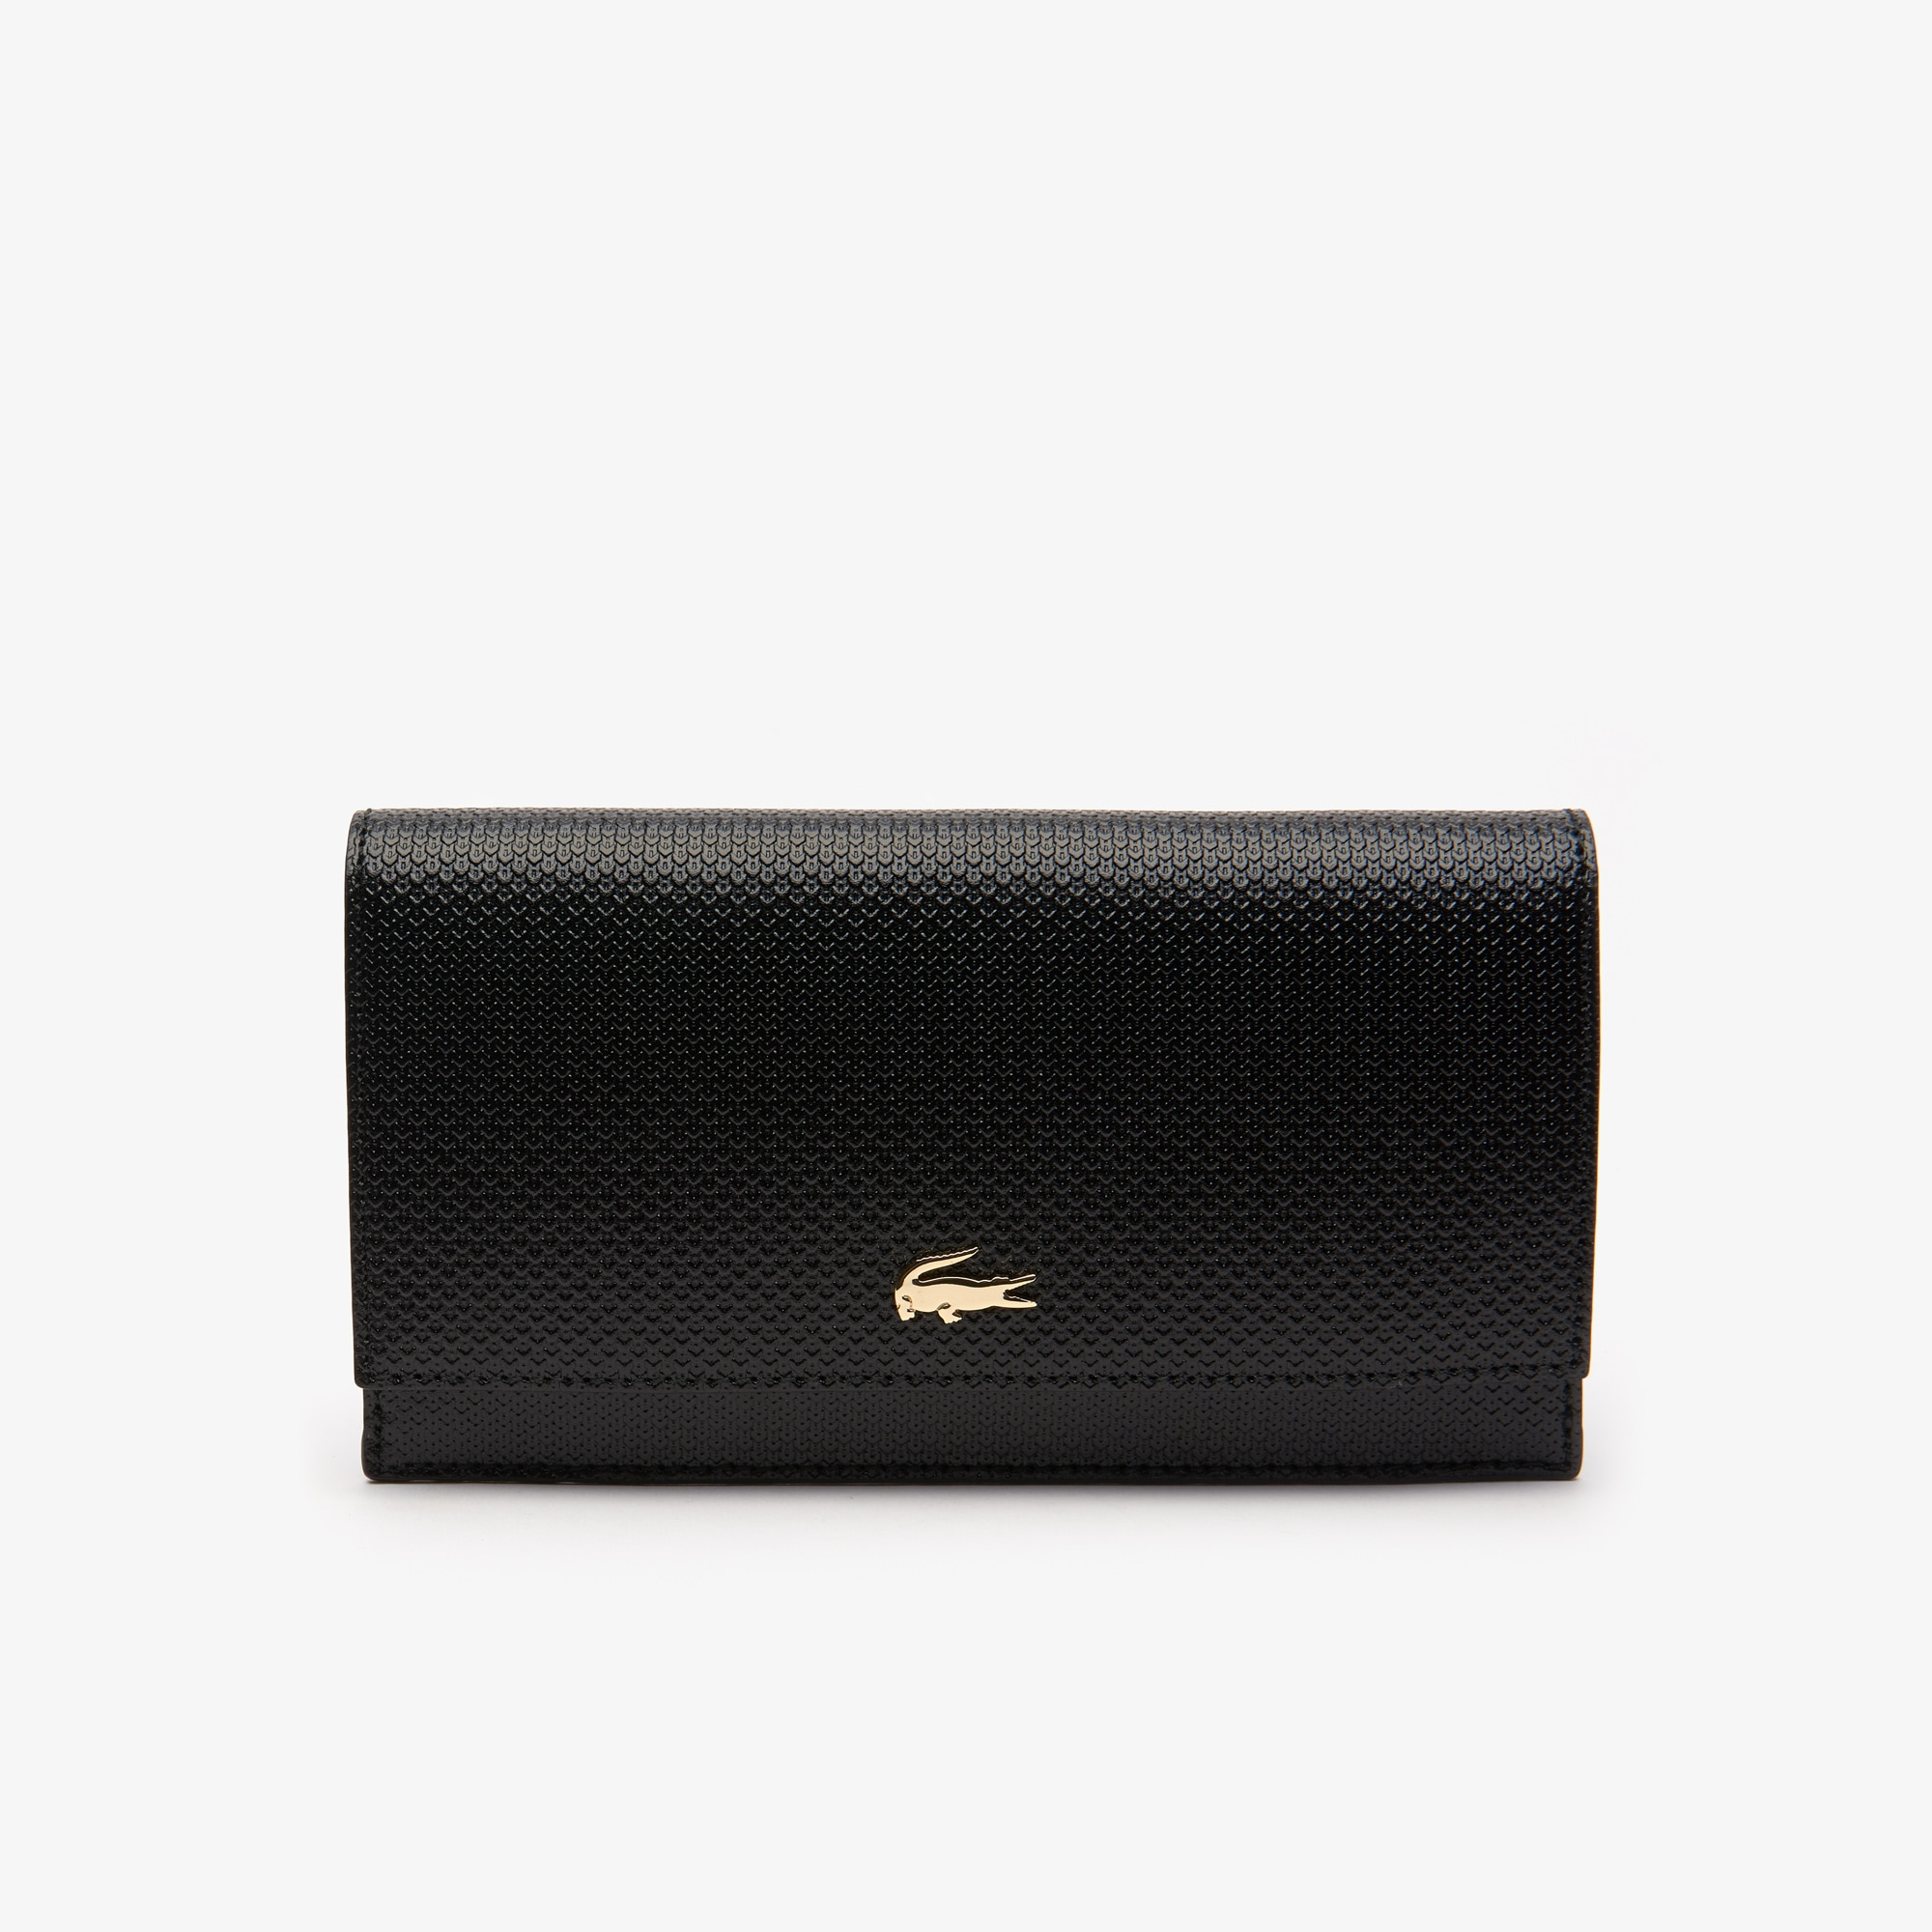 91ec37c98b7 Women's Wallet and Phone Cases | Accessories | LACOSTE